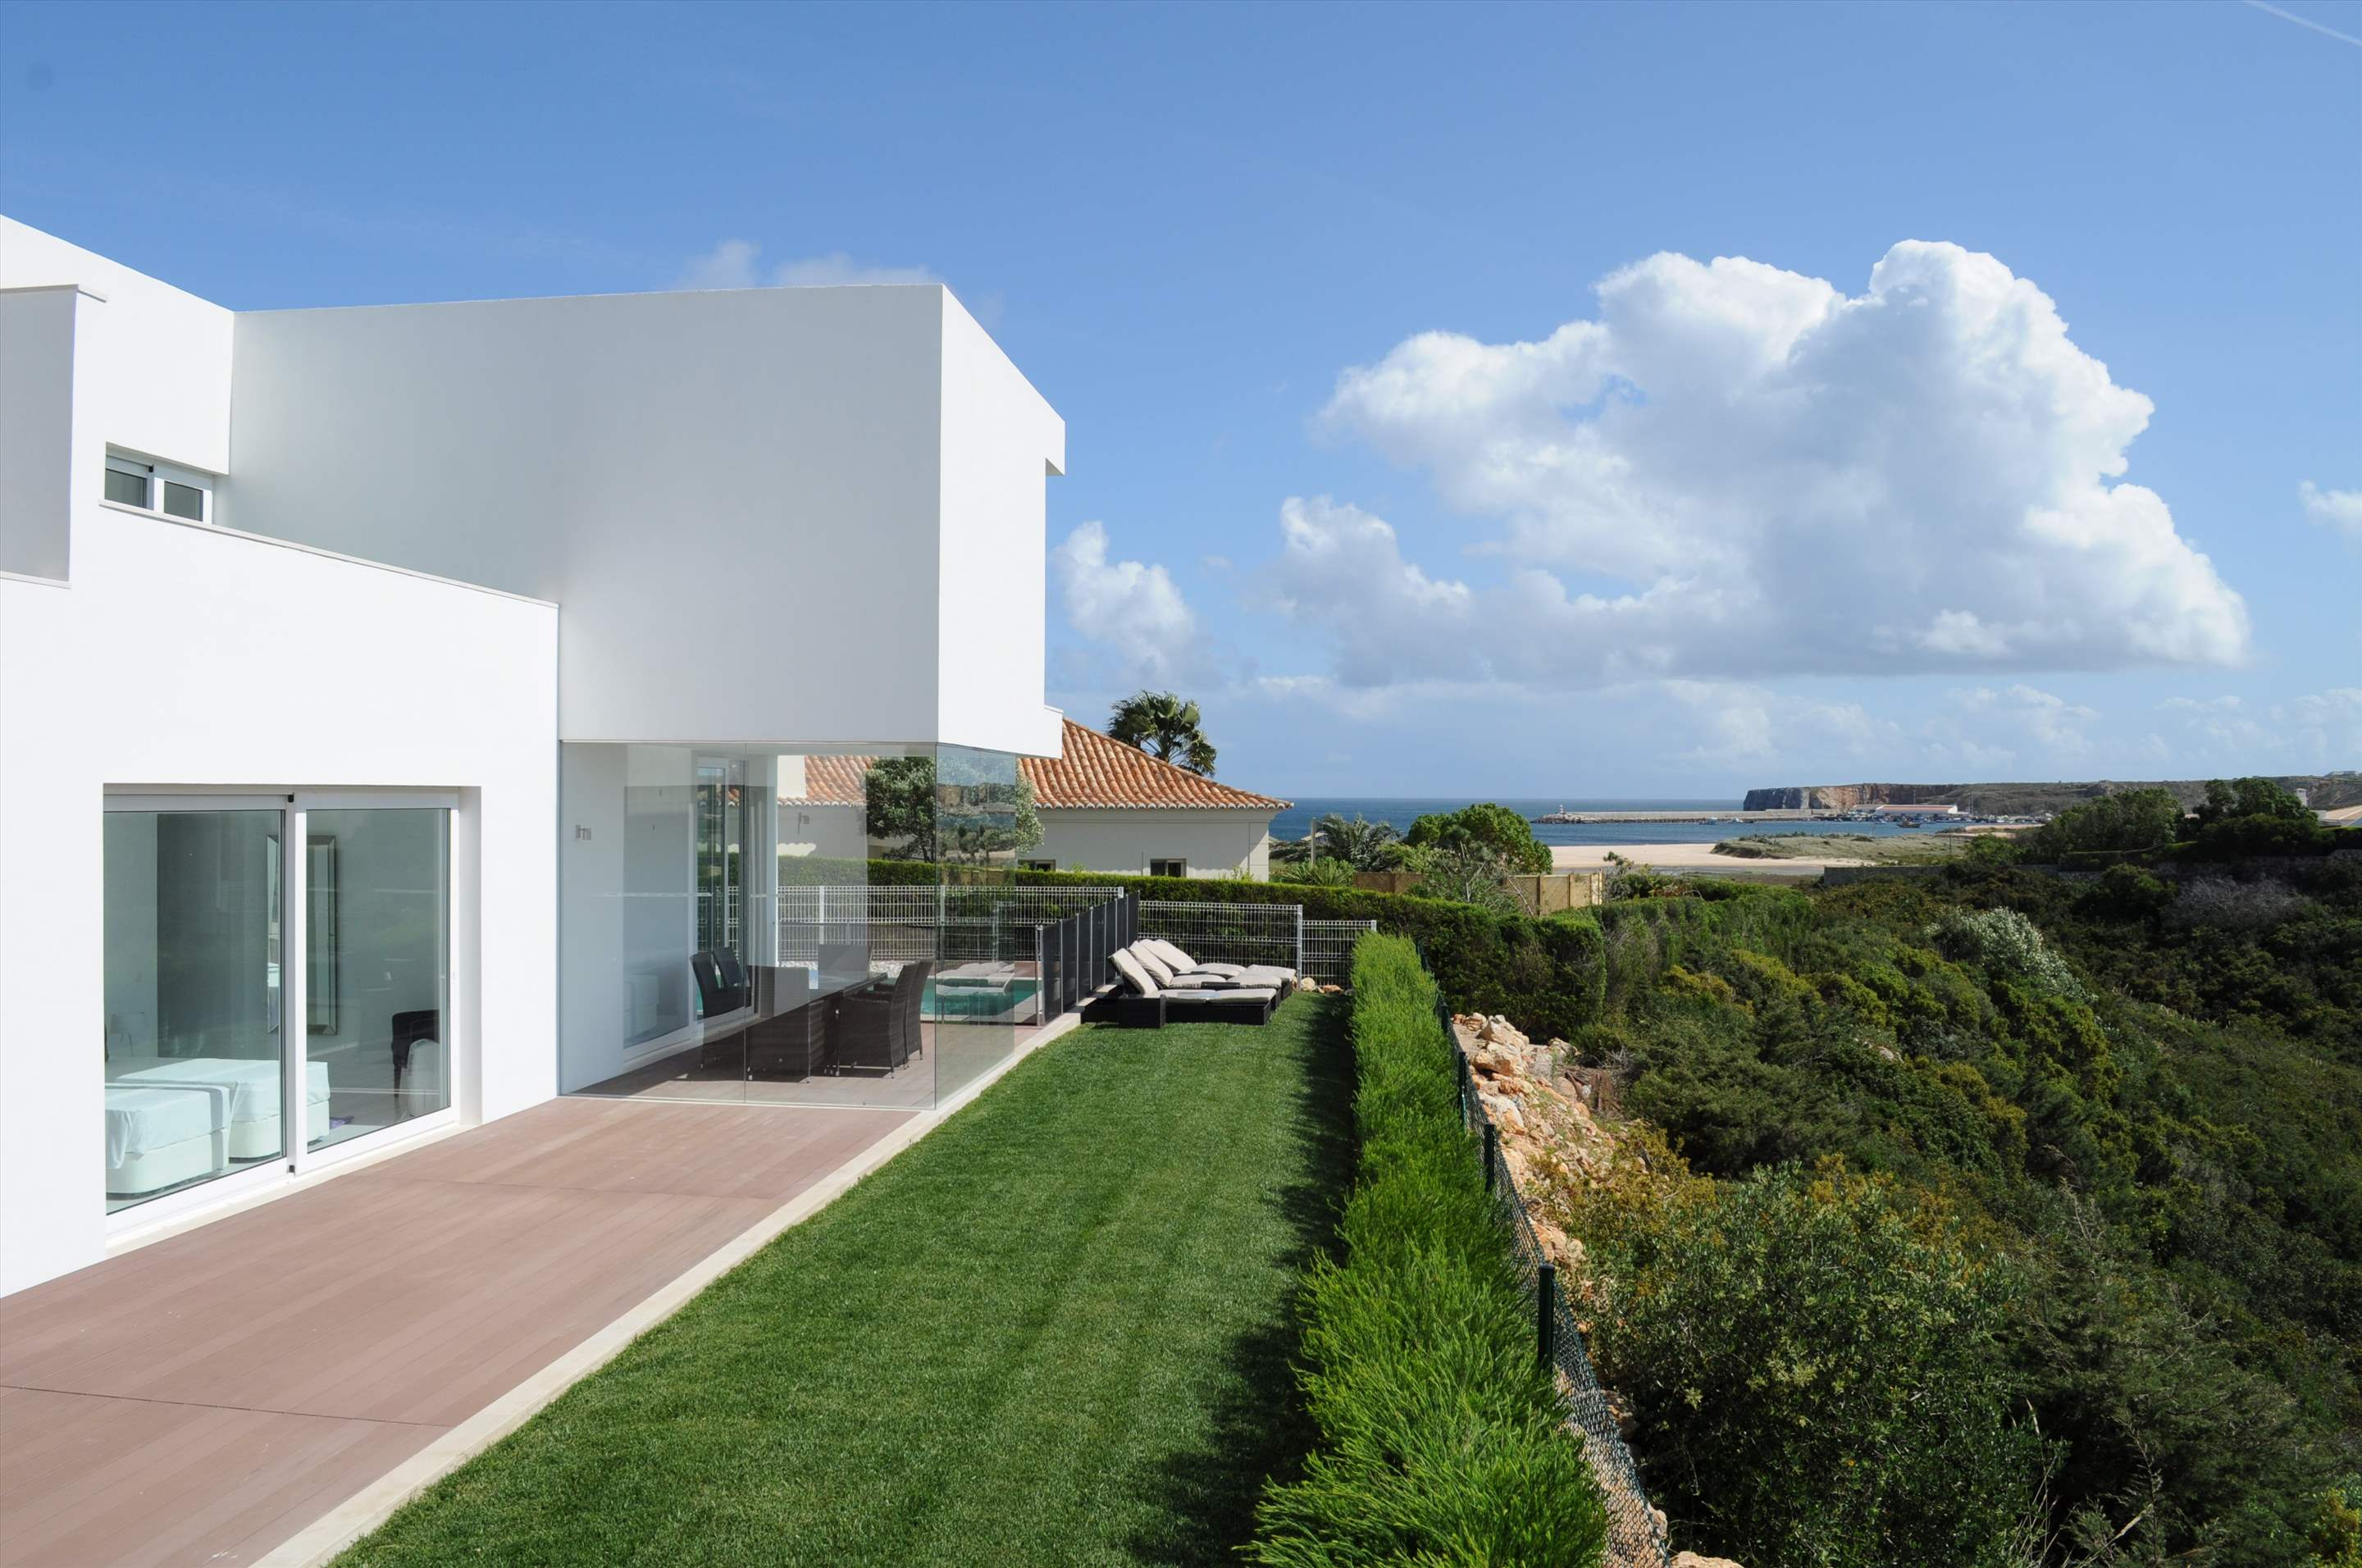 Martinhal Luxury Villa No.6, 3 bedroom villa in Martinhal Sagres, Algarve